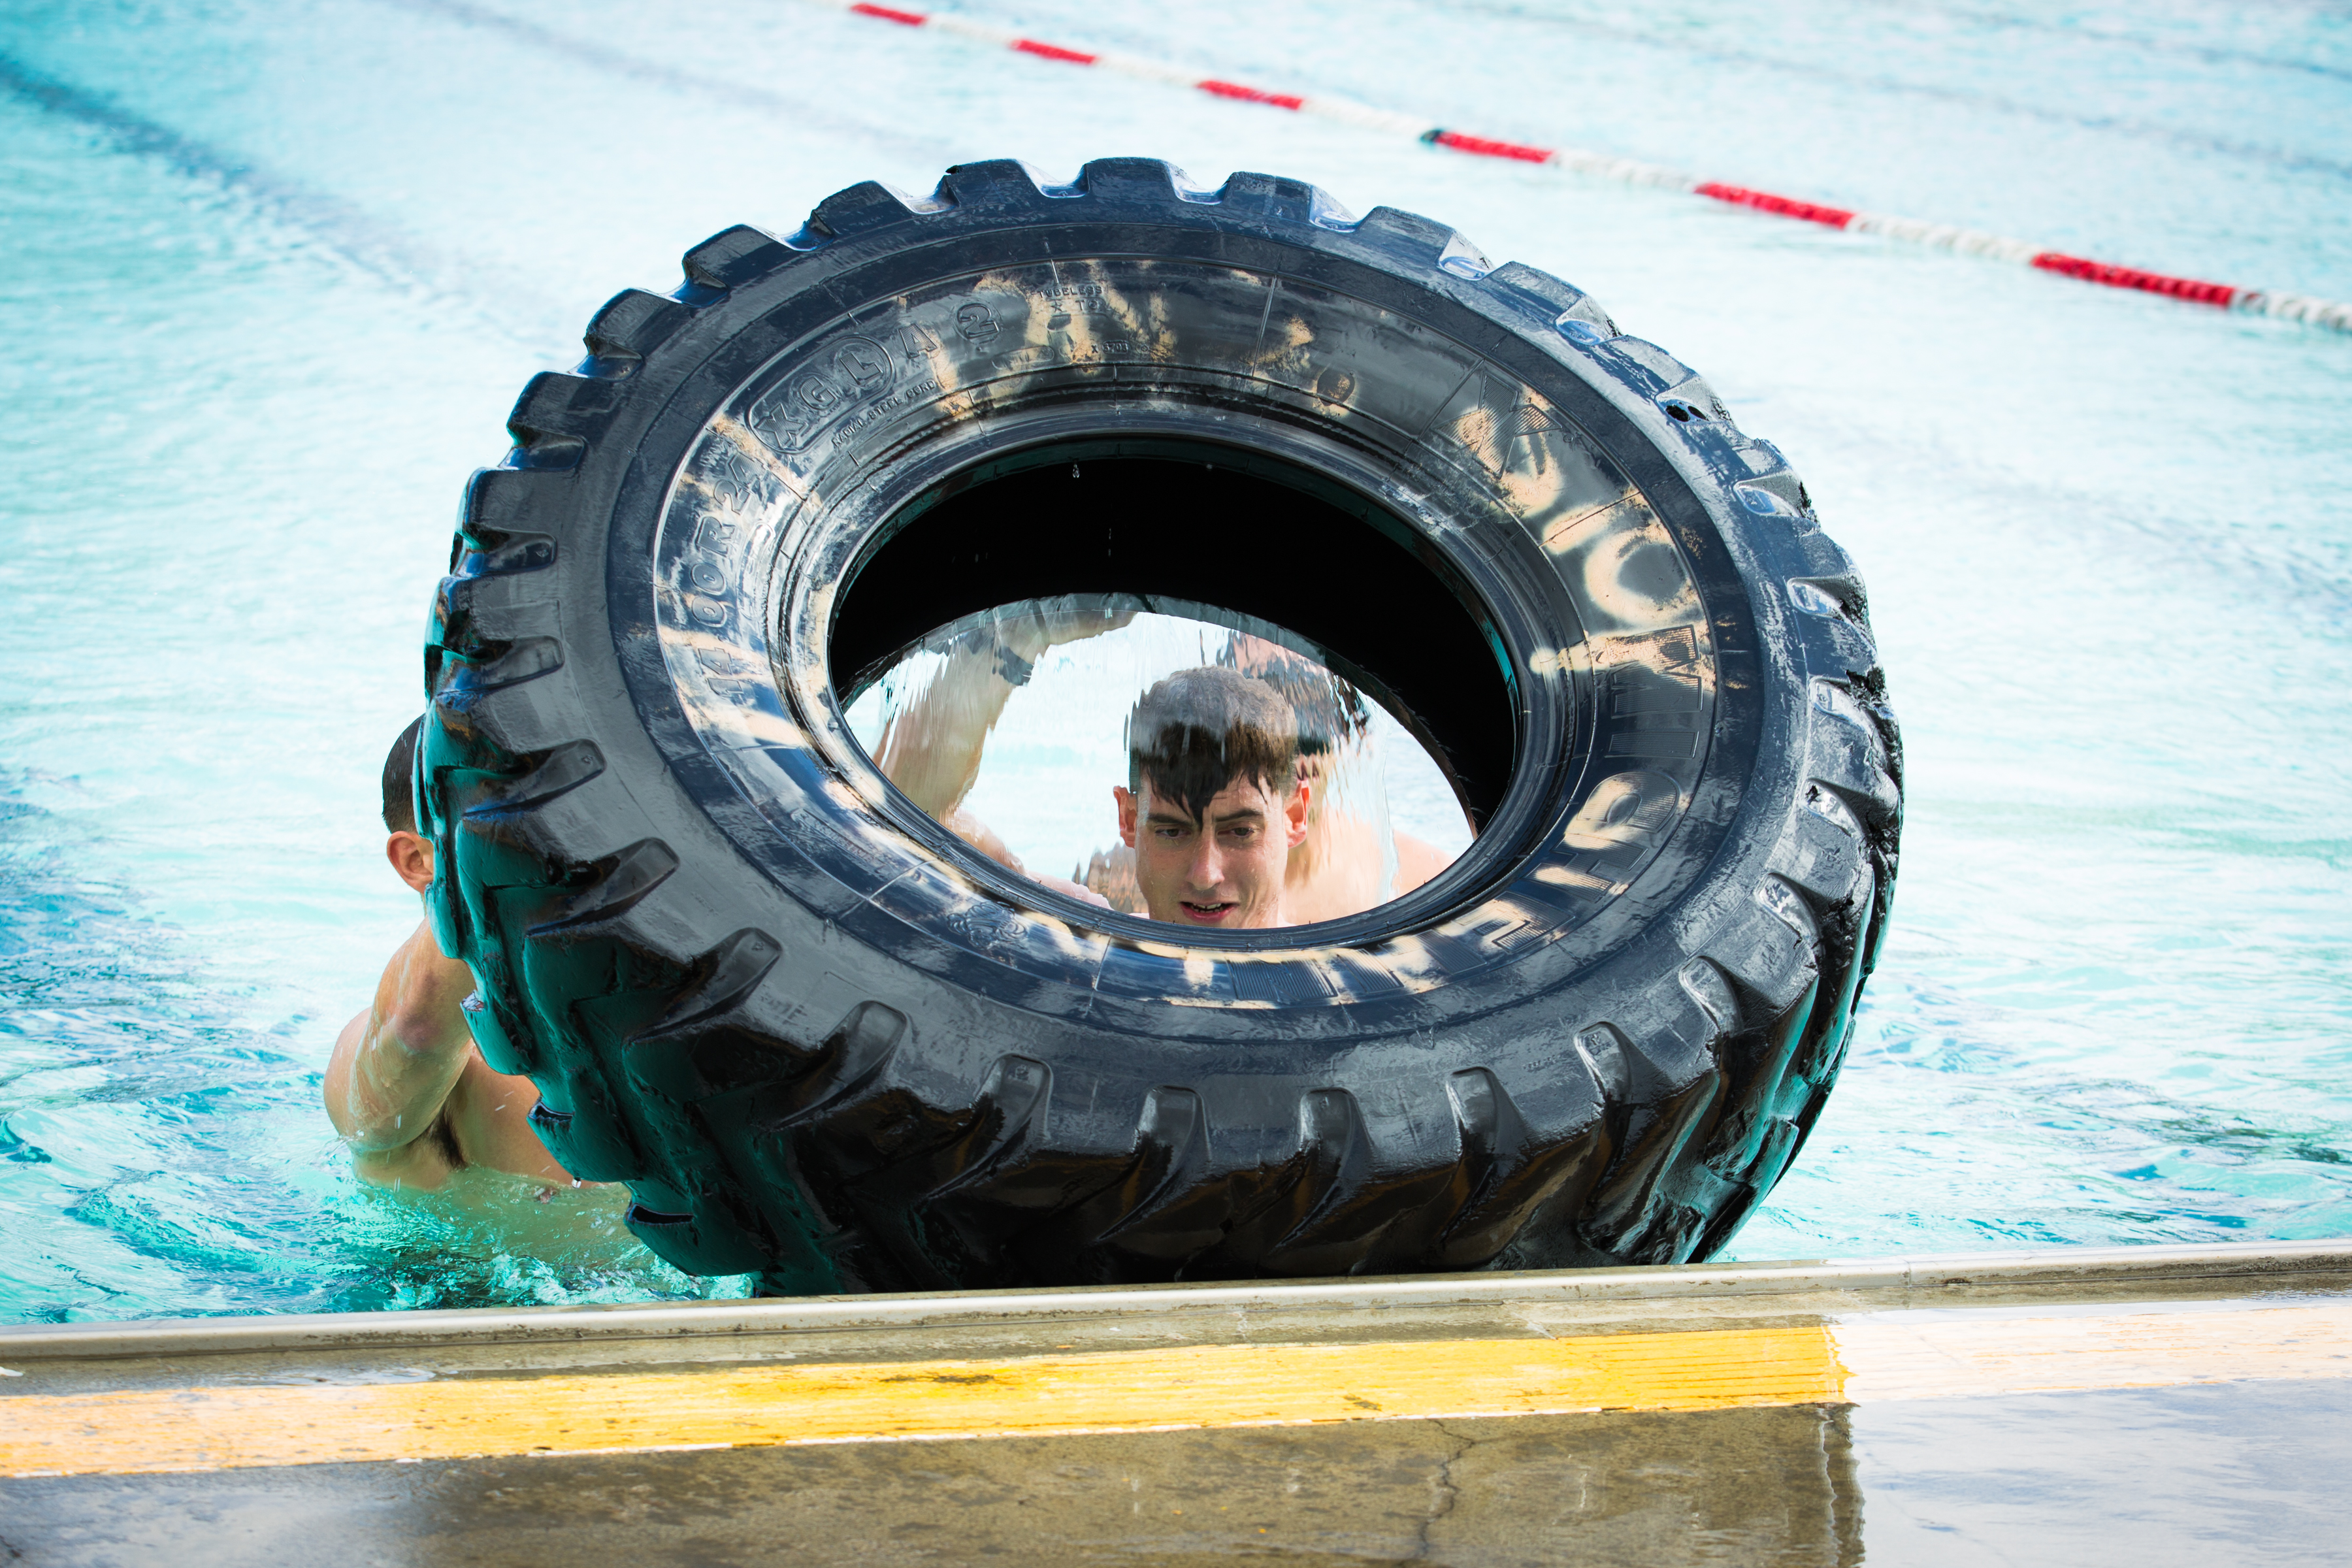 Sgt. Timothy Perez pushes a tire toward his teammate during the Recon Challenge Thursday at Camp Pendleton.